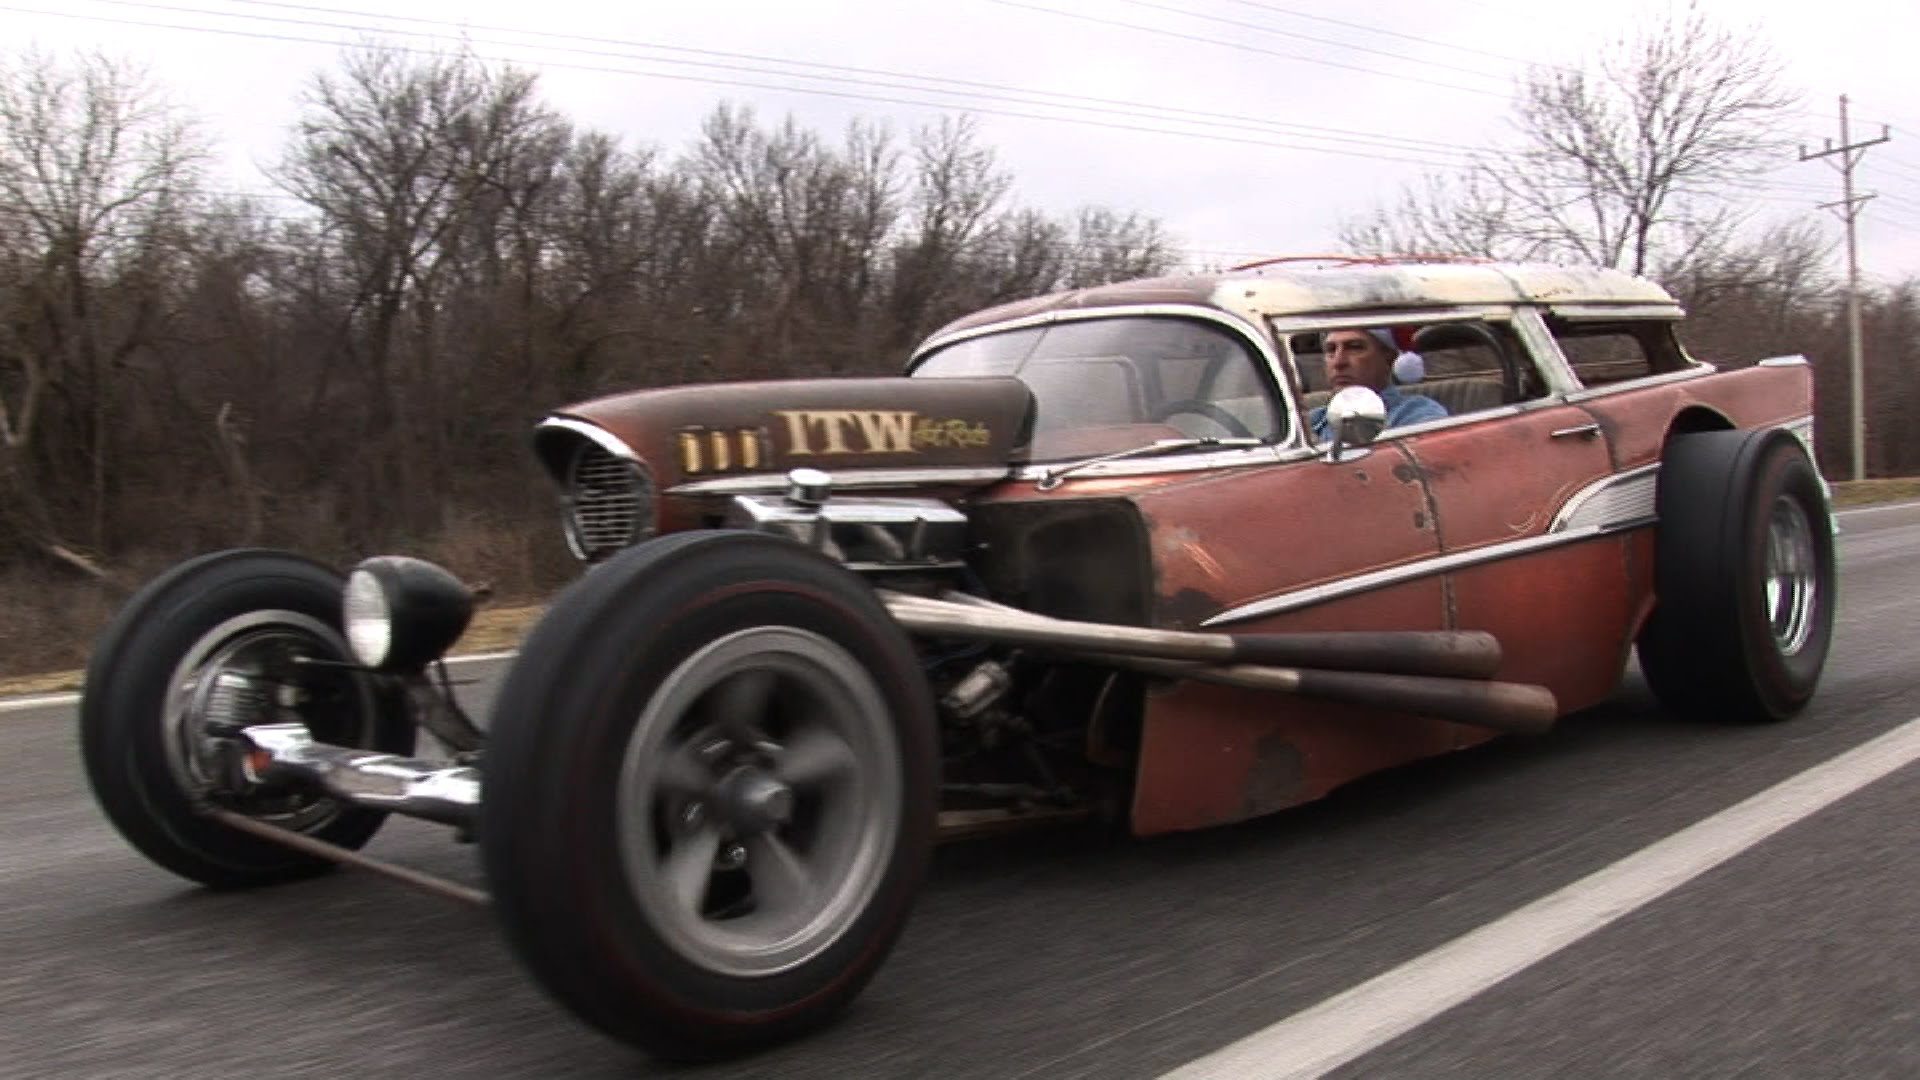 Rick Newberrys Crazy 1957 Chevy Wagon Rat Rod Will Drive You Insane Nomad With Lust And Envy